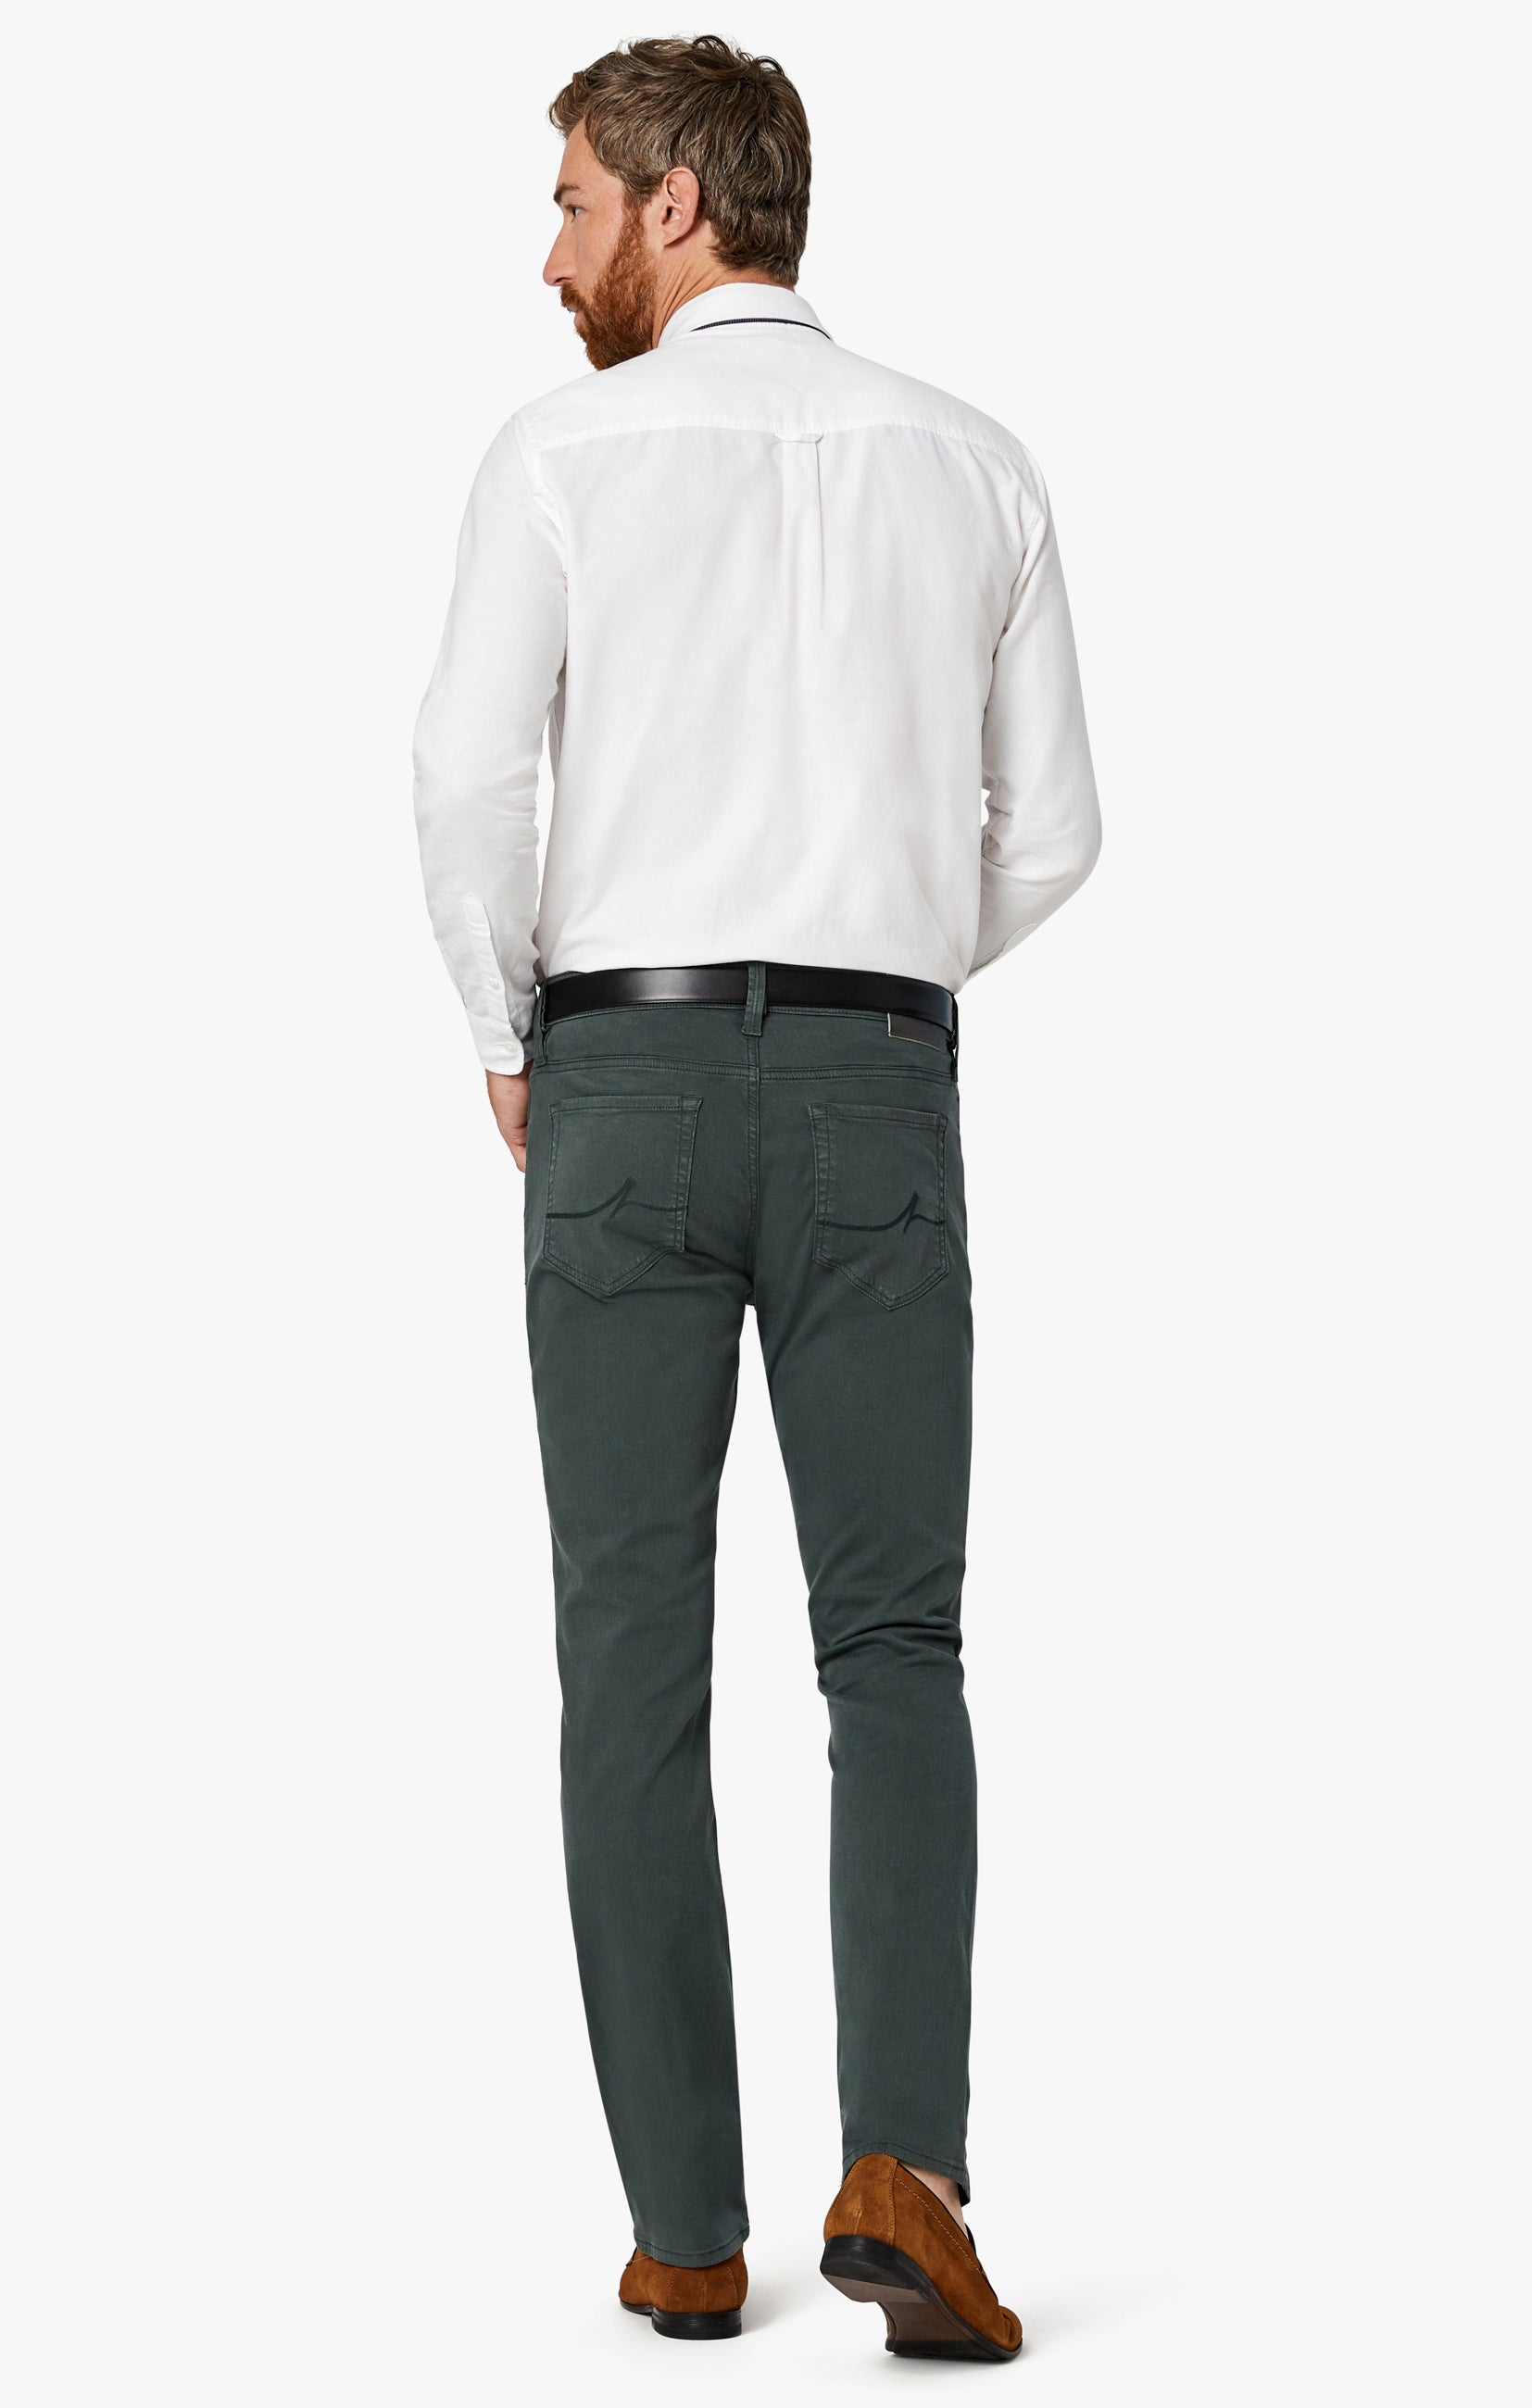 Charisma Relaxed Straight Pants in Urban Twill Image 6